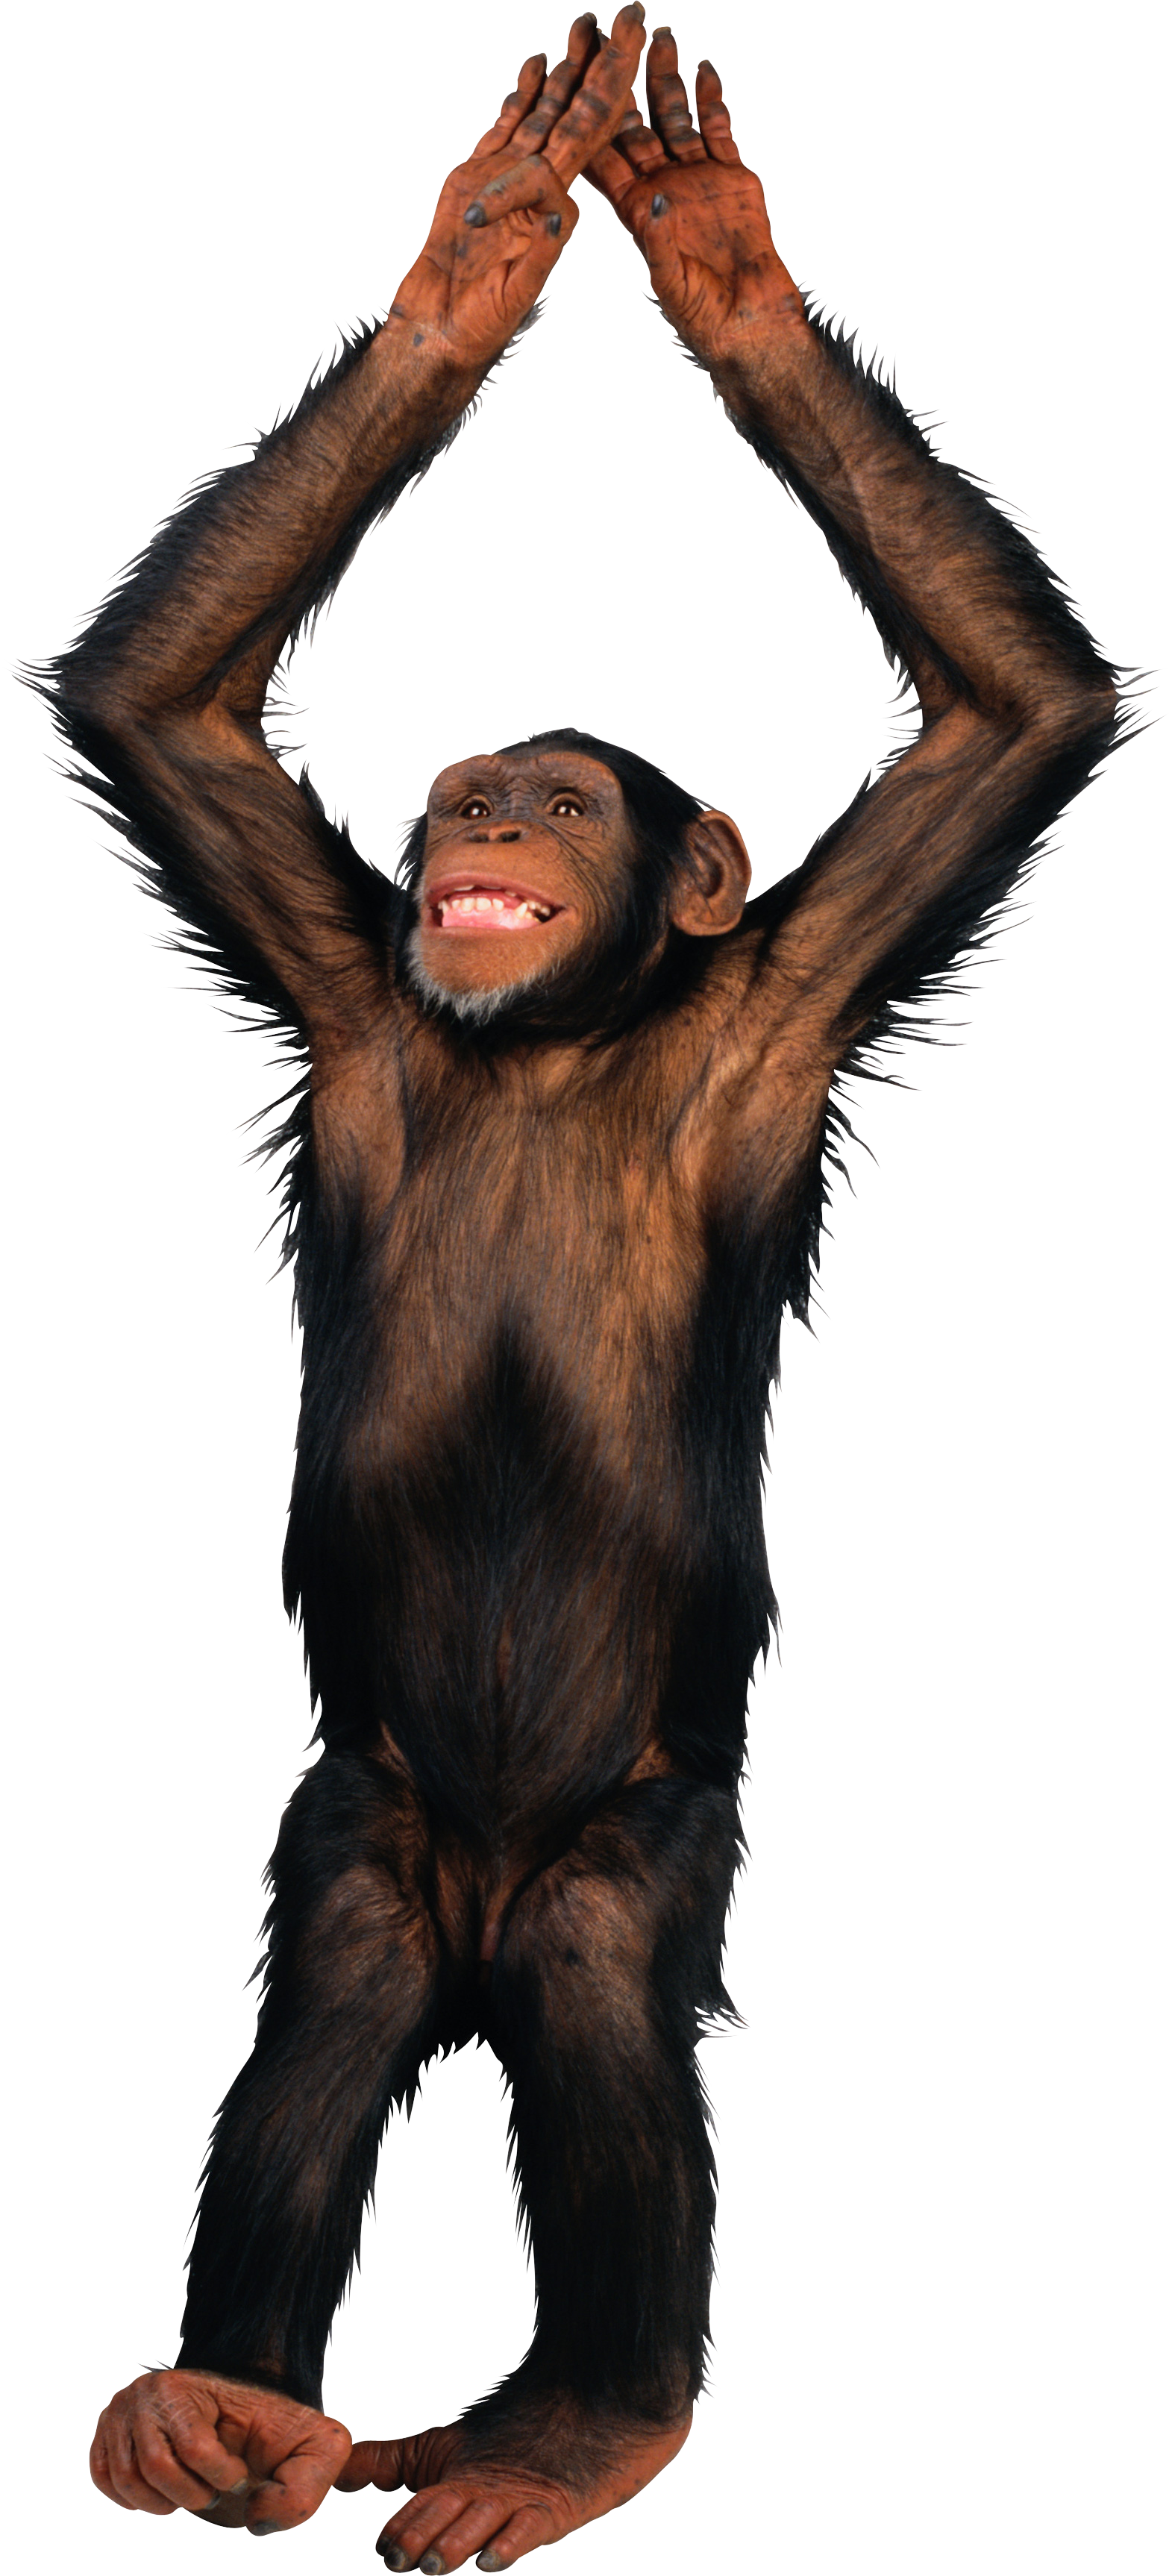 Monkey png transparent images. Monkeys clipart chimpanzee